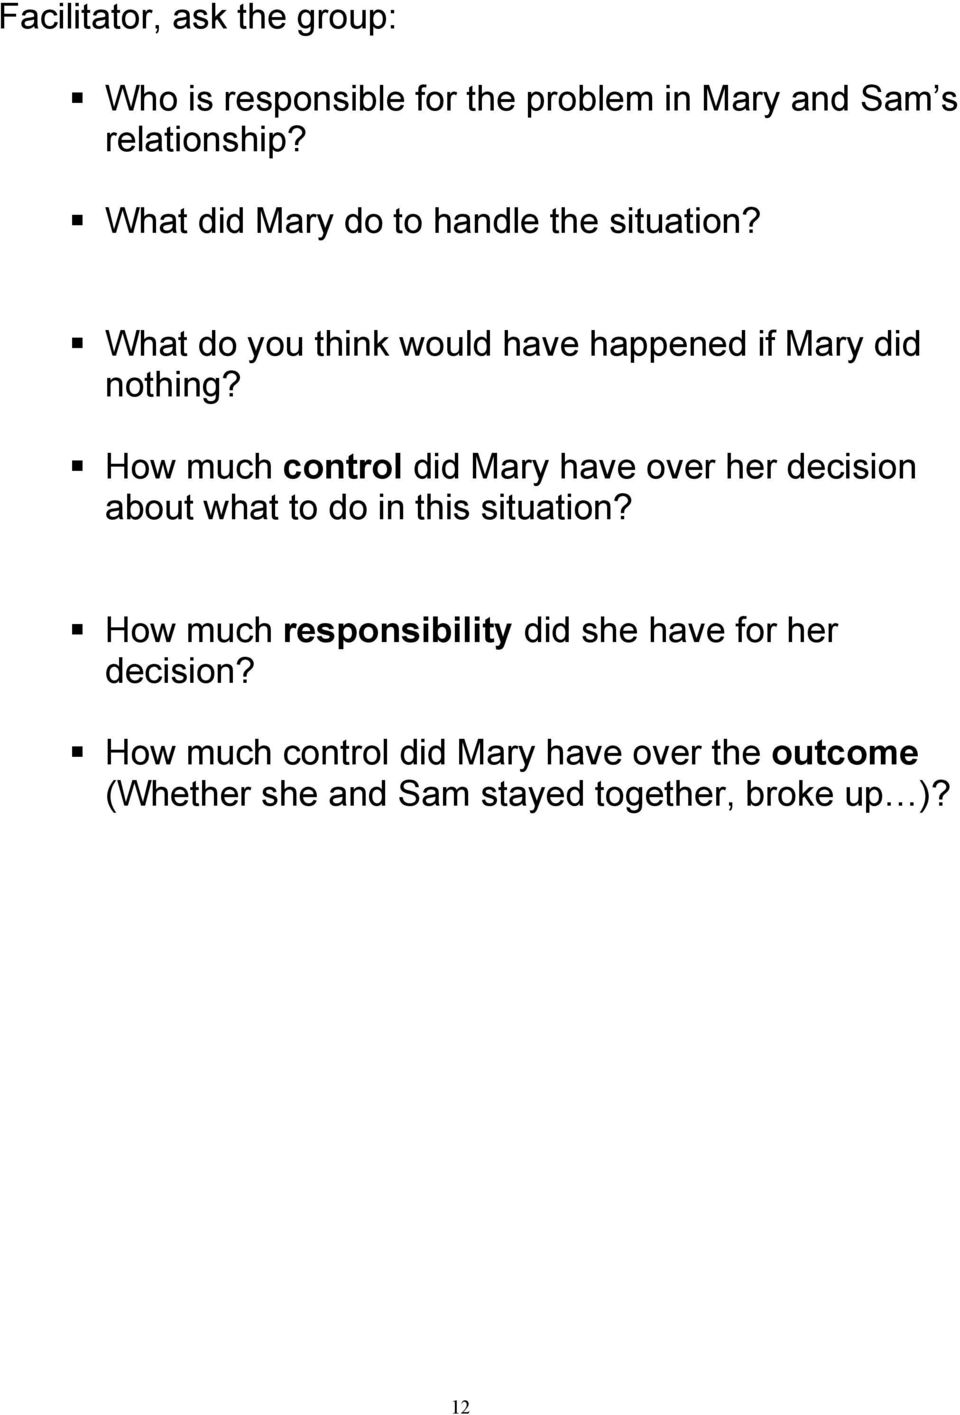 How much control did Mary have over her decision about what to do in this situation?